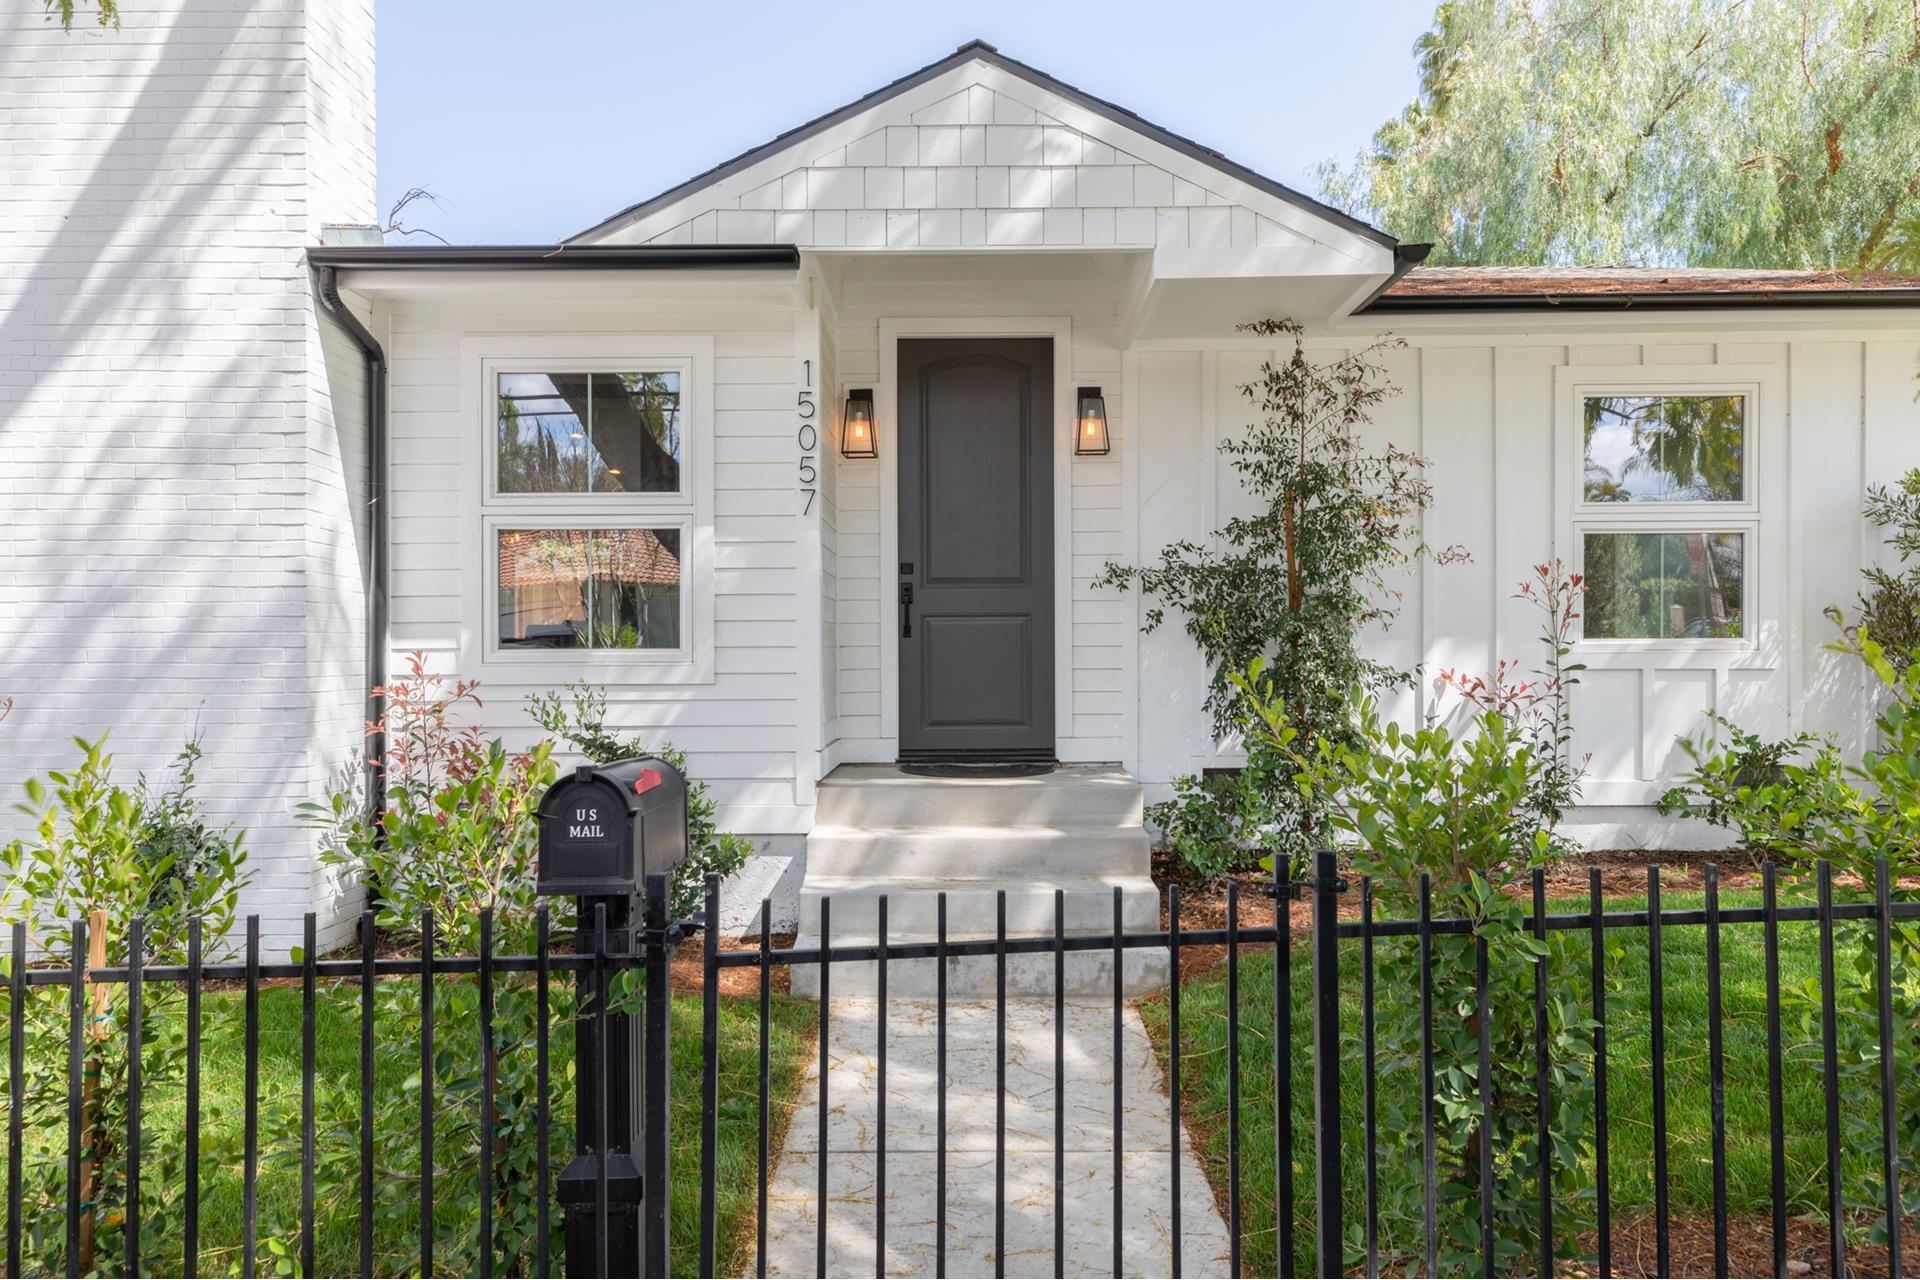 15057 GREENLEAF Street - Sherman Oaks, California